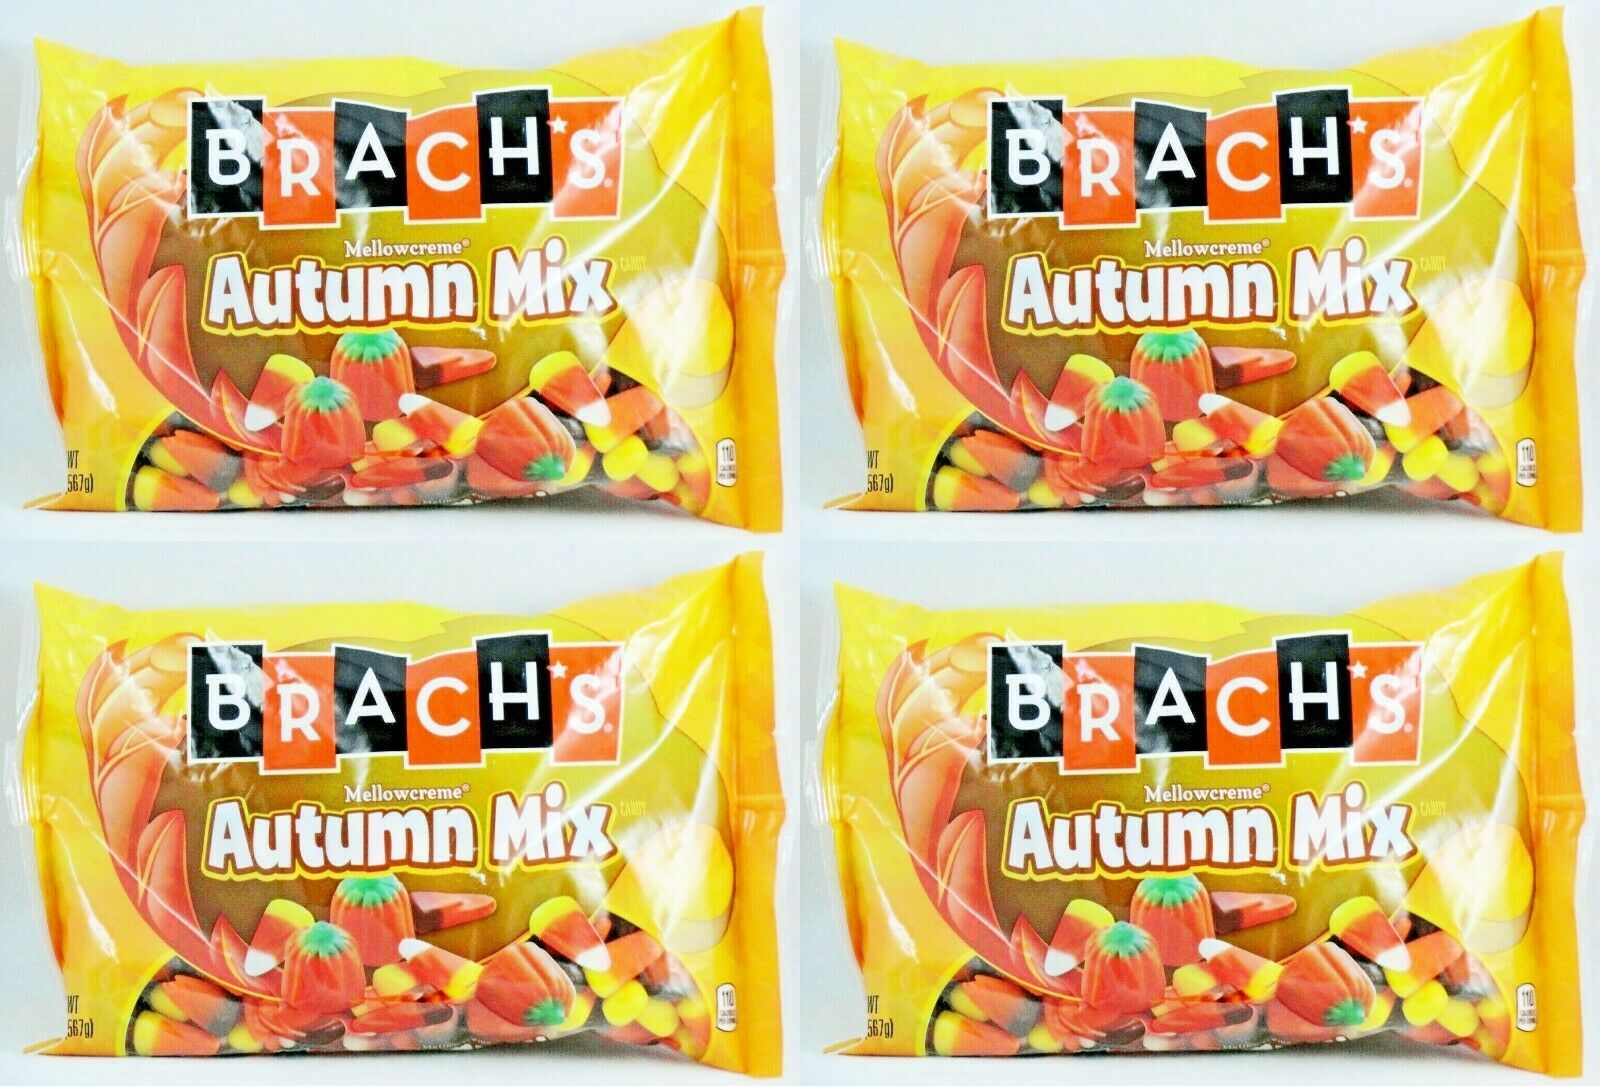 4x 20oz BAG BRACH'S AUTUMN MIX MELLOWCREME CANDY CORN PUMPKINS HARVEST CORN NEW